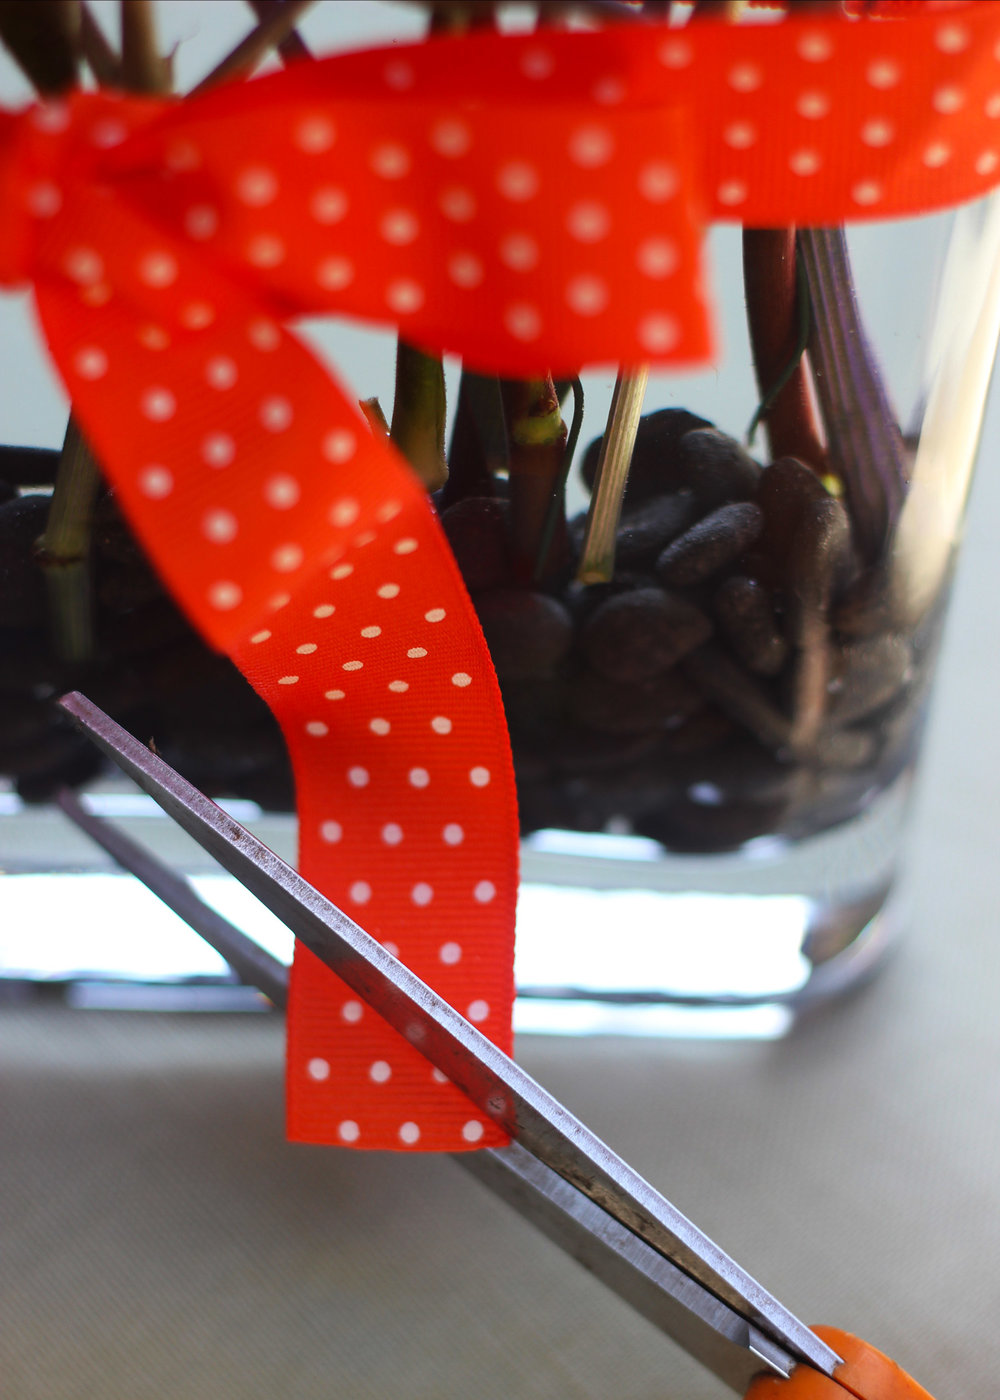 Tie ribbon tight in a knot then a bow.  Cut edges at a 45 degree angle.